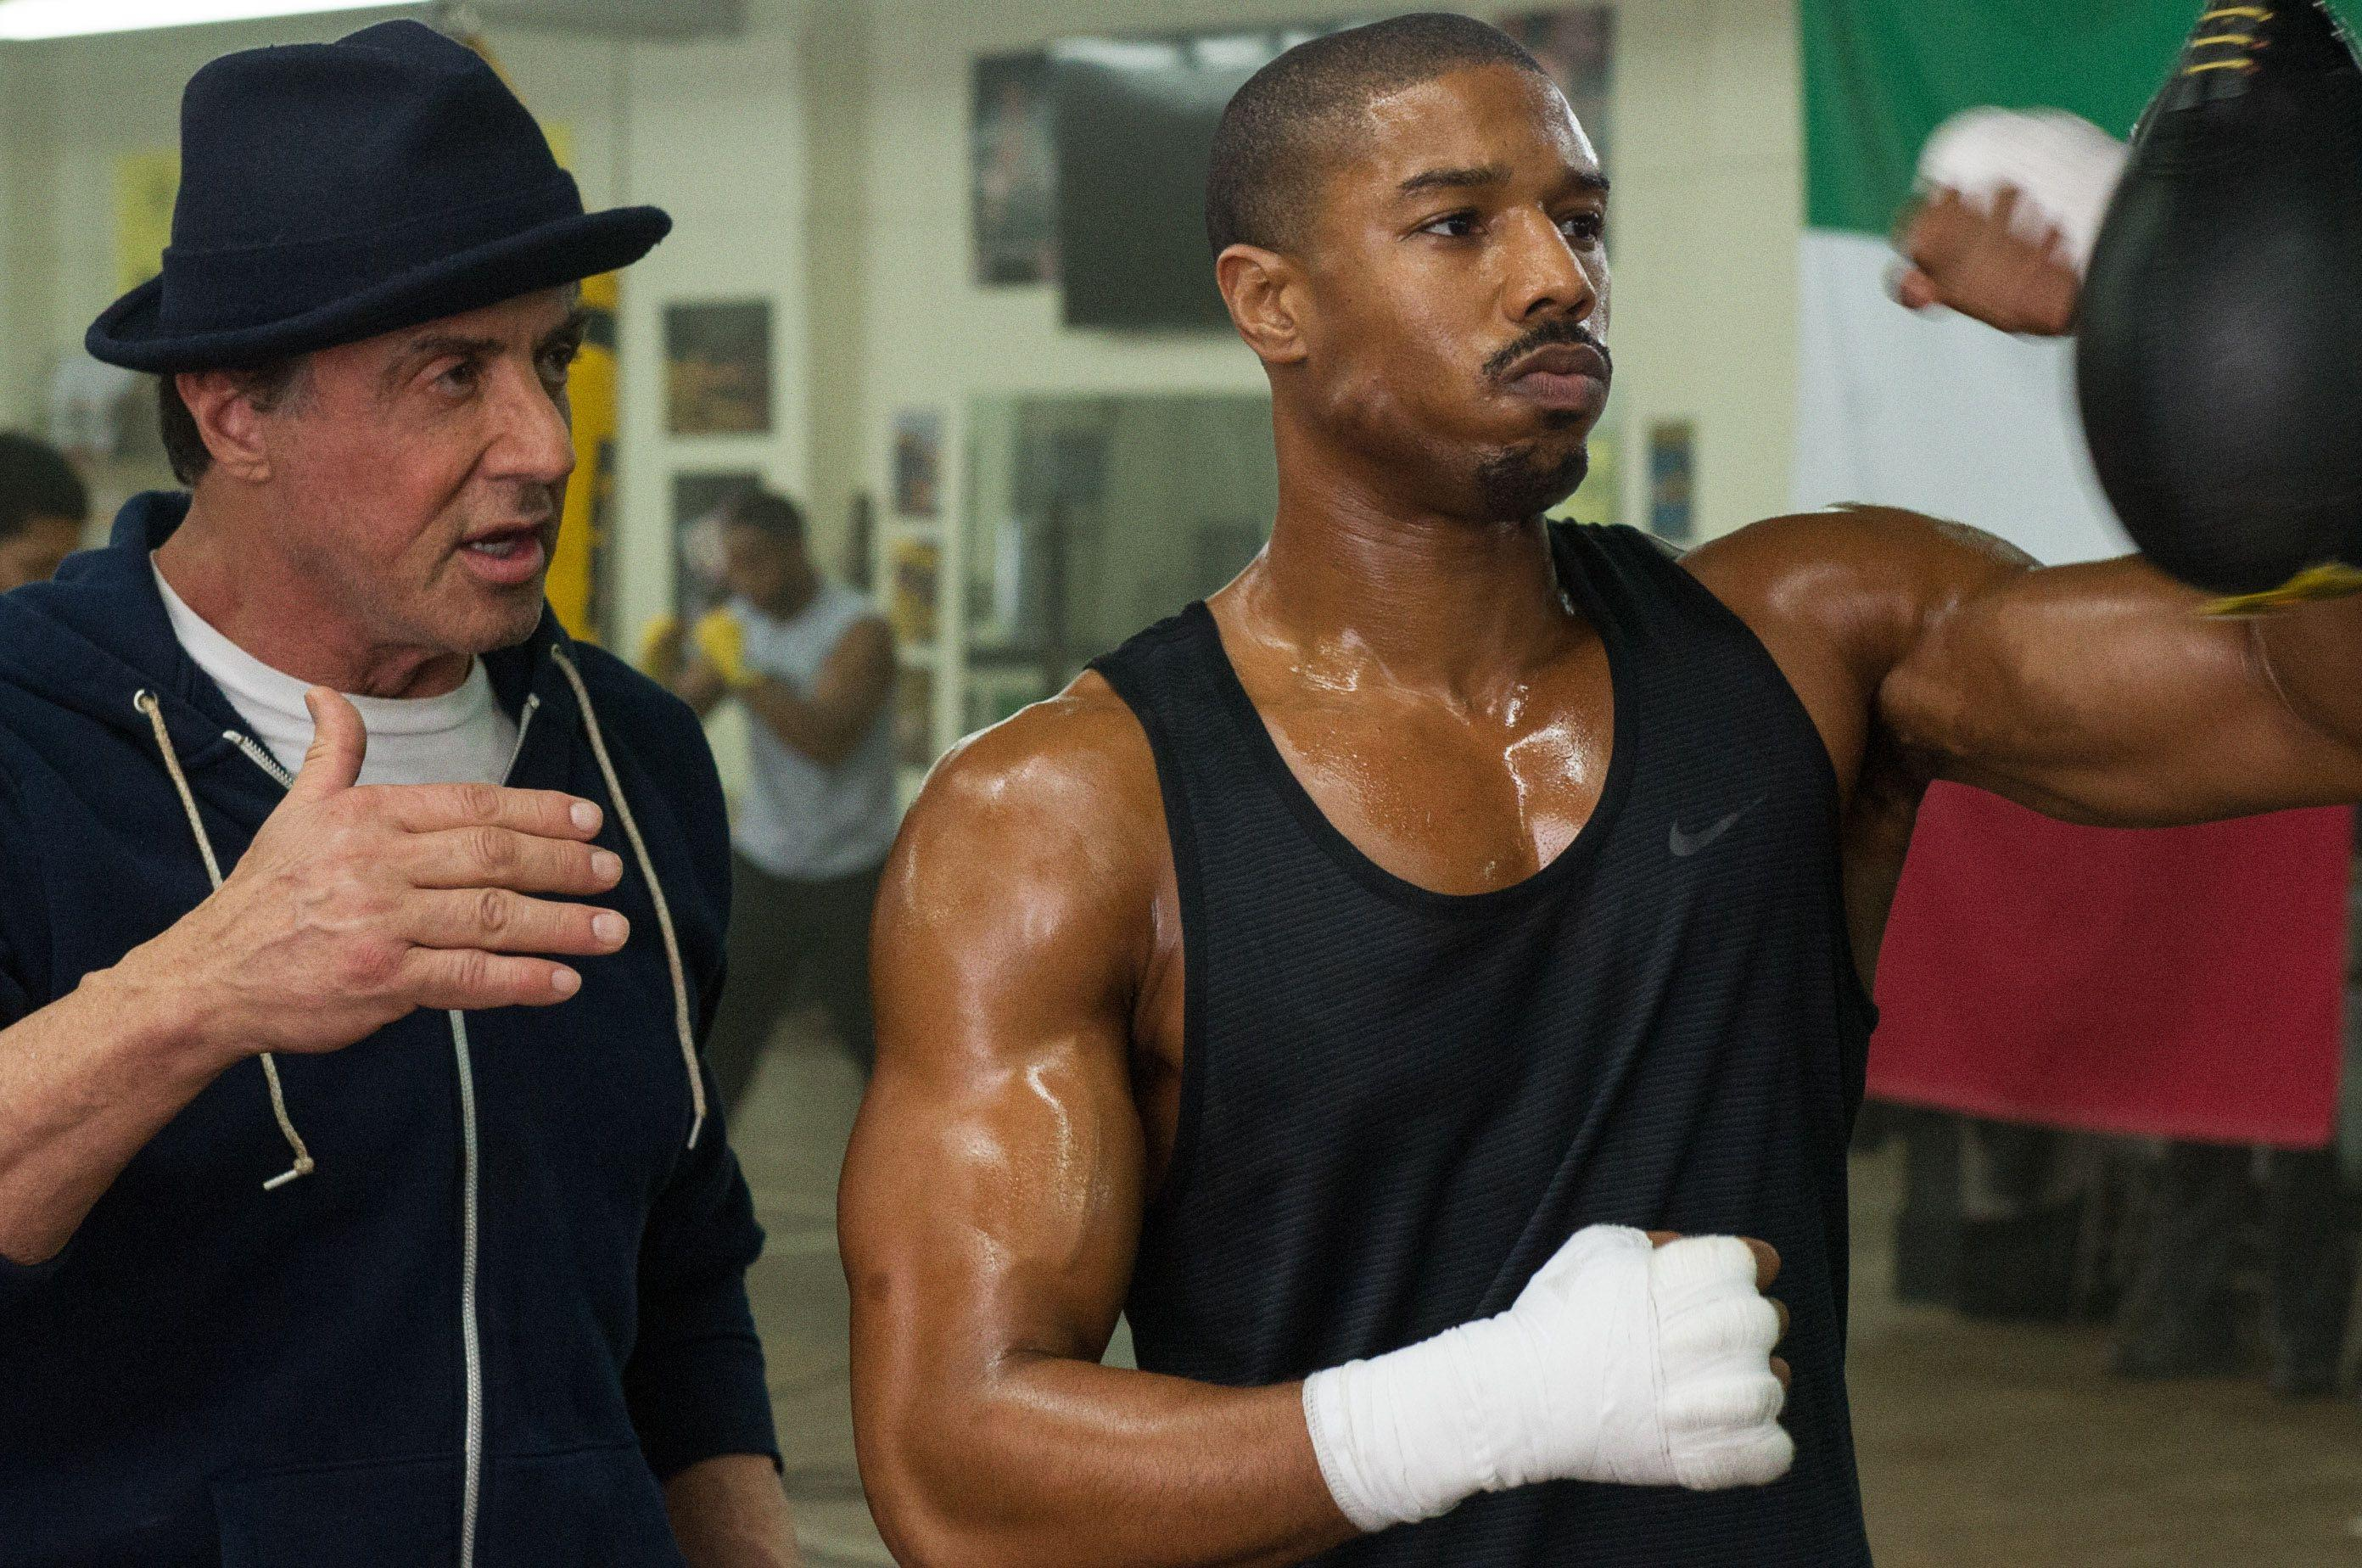 7 'Creed' moments that made me cry